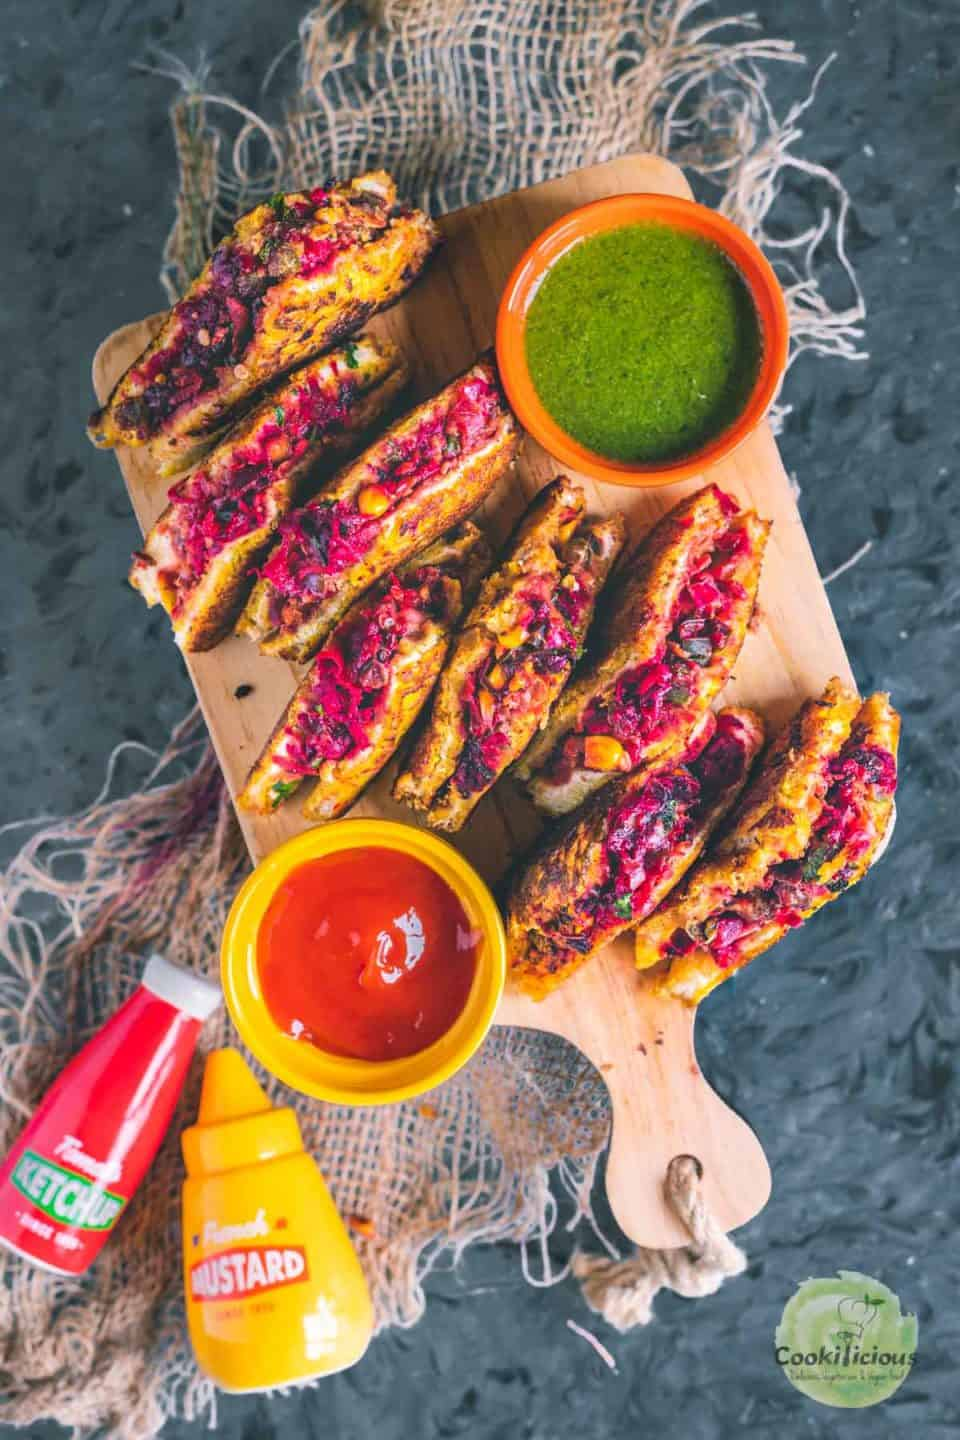 Savory French Toast slices placed on a wooden board with a bowl of ketchup and chutney